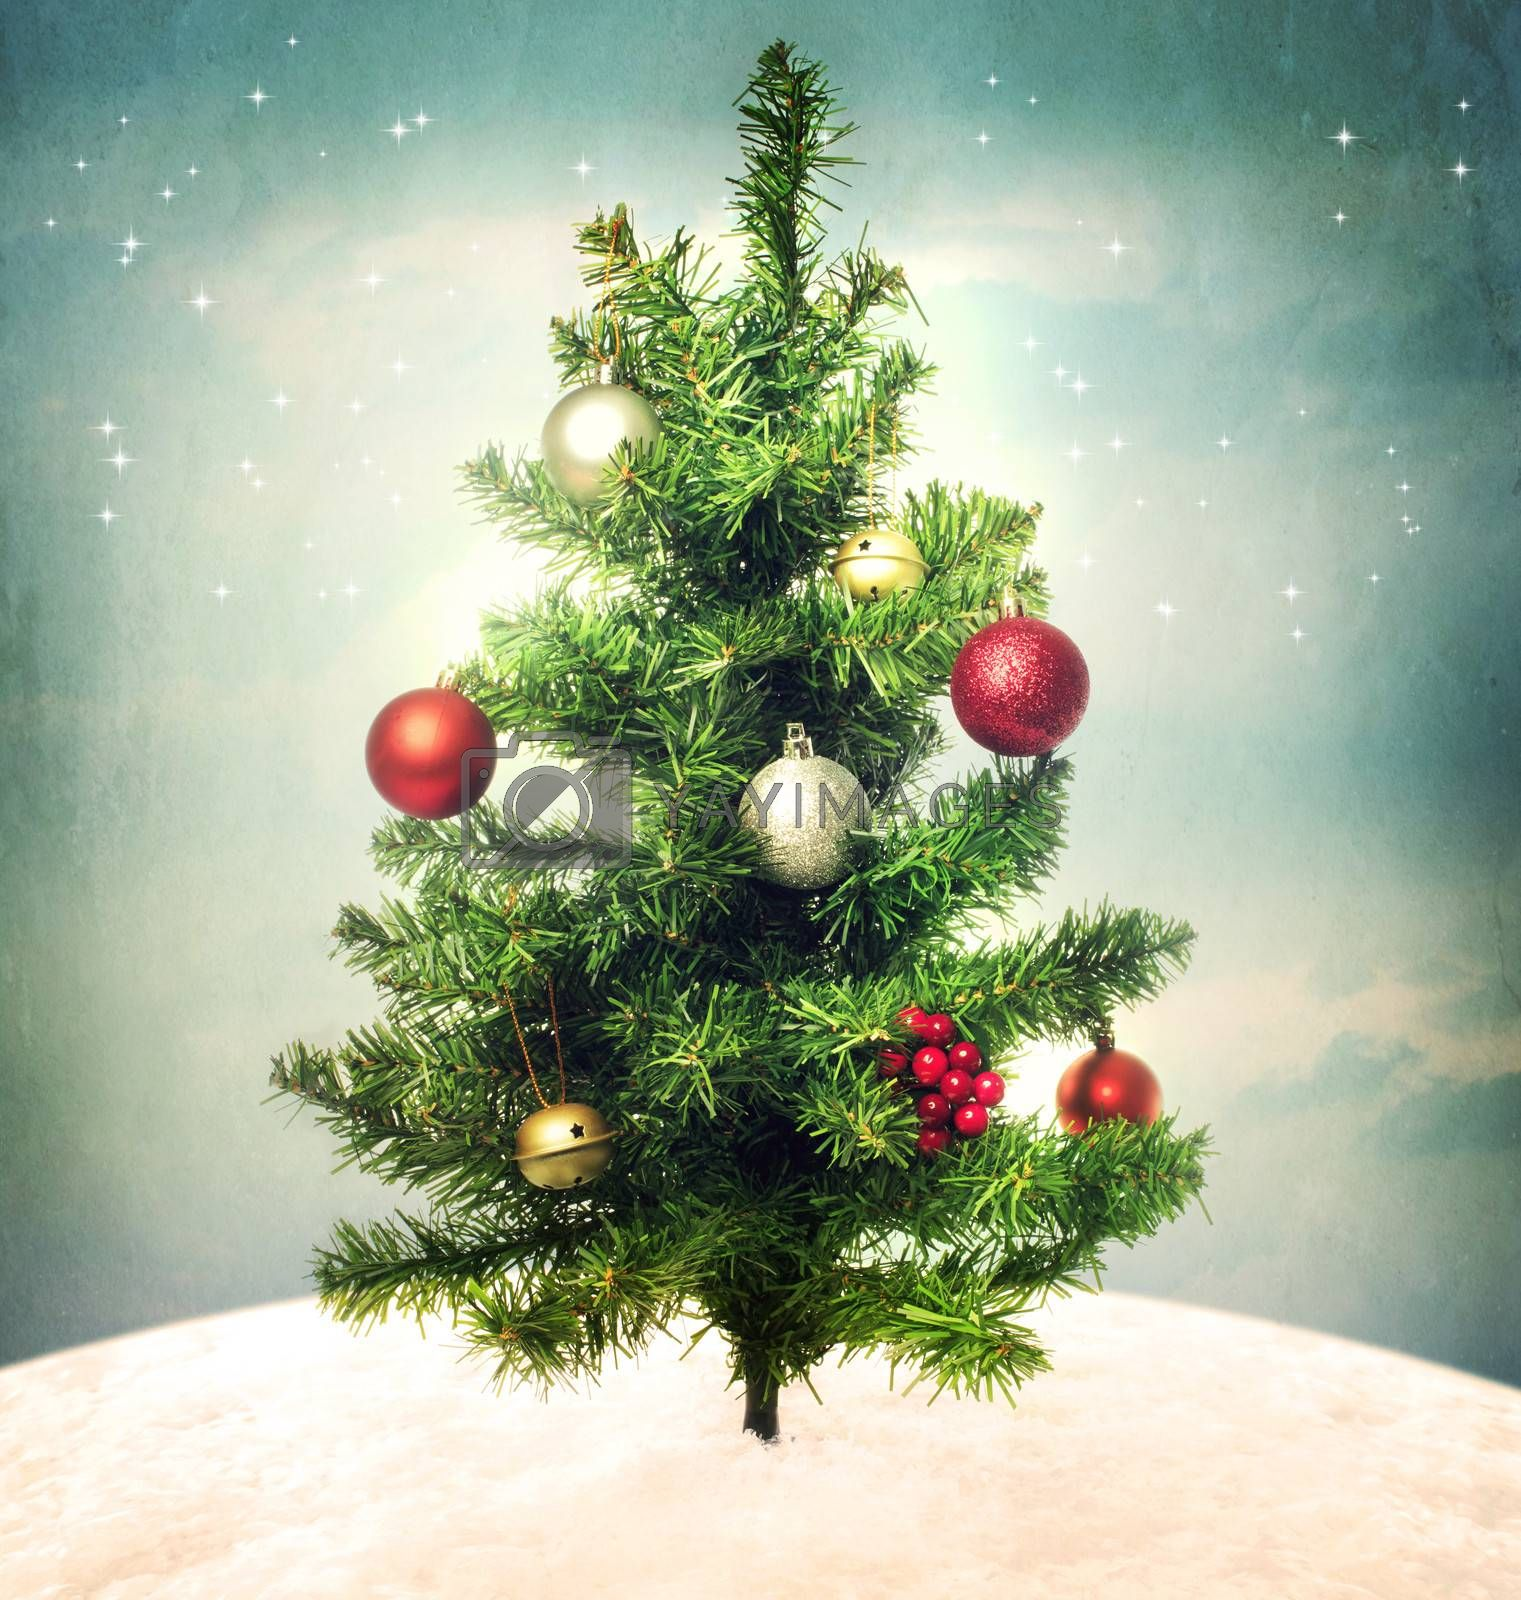 Royalty free image of Decorated Christmas tree on hilltop by melpomene